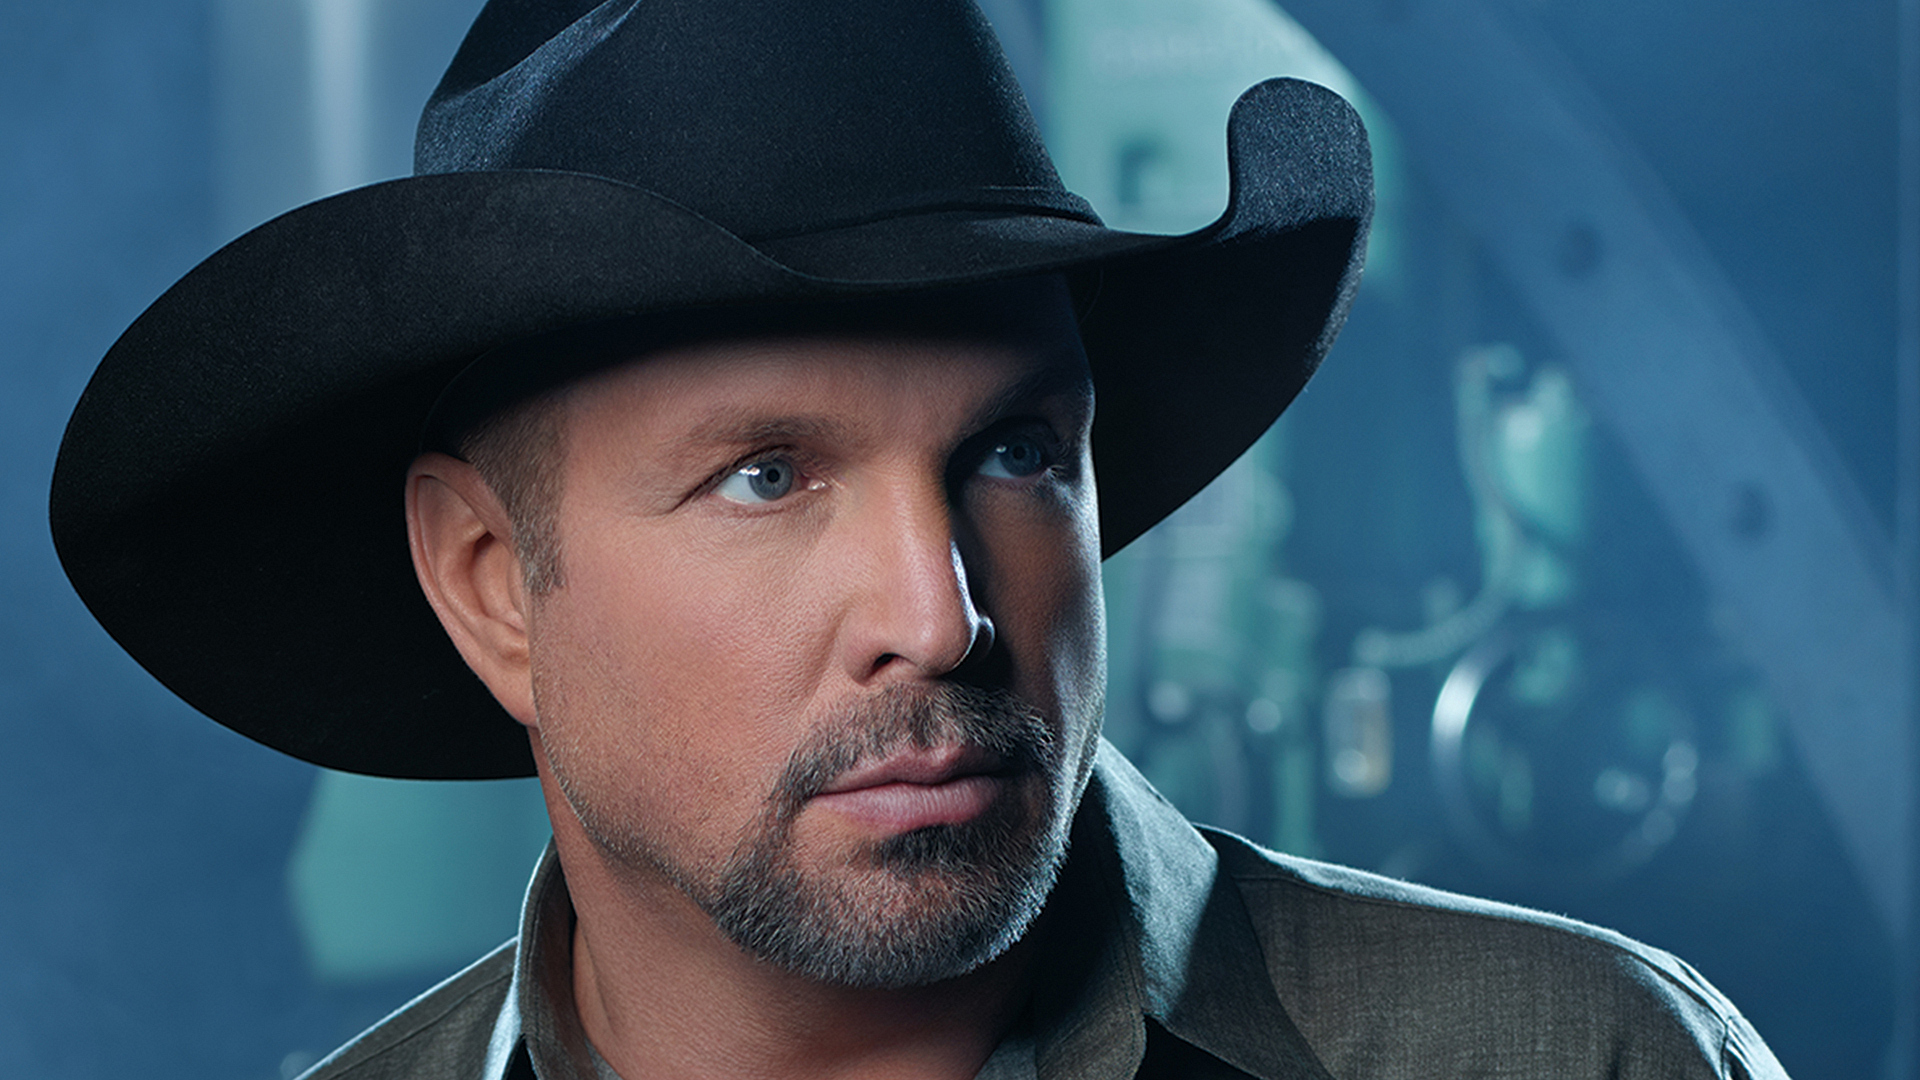 Ladies and gentleman, a round of applause for country legend Garth Brooks.